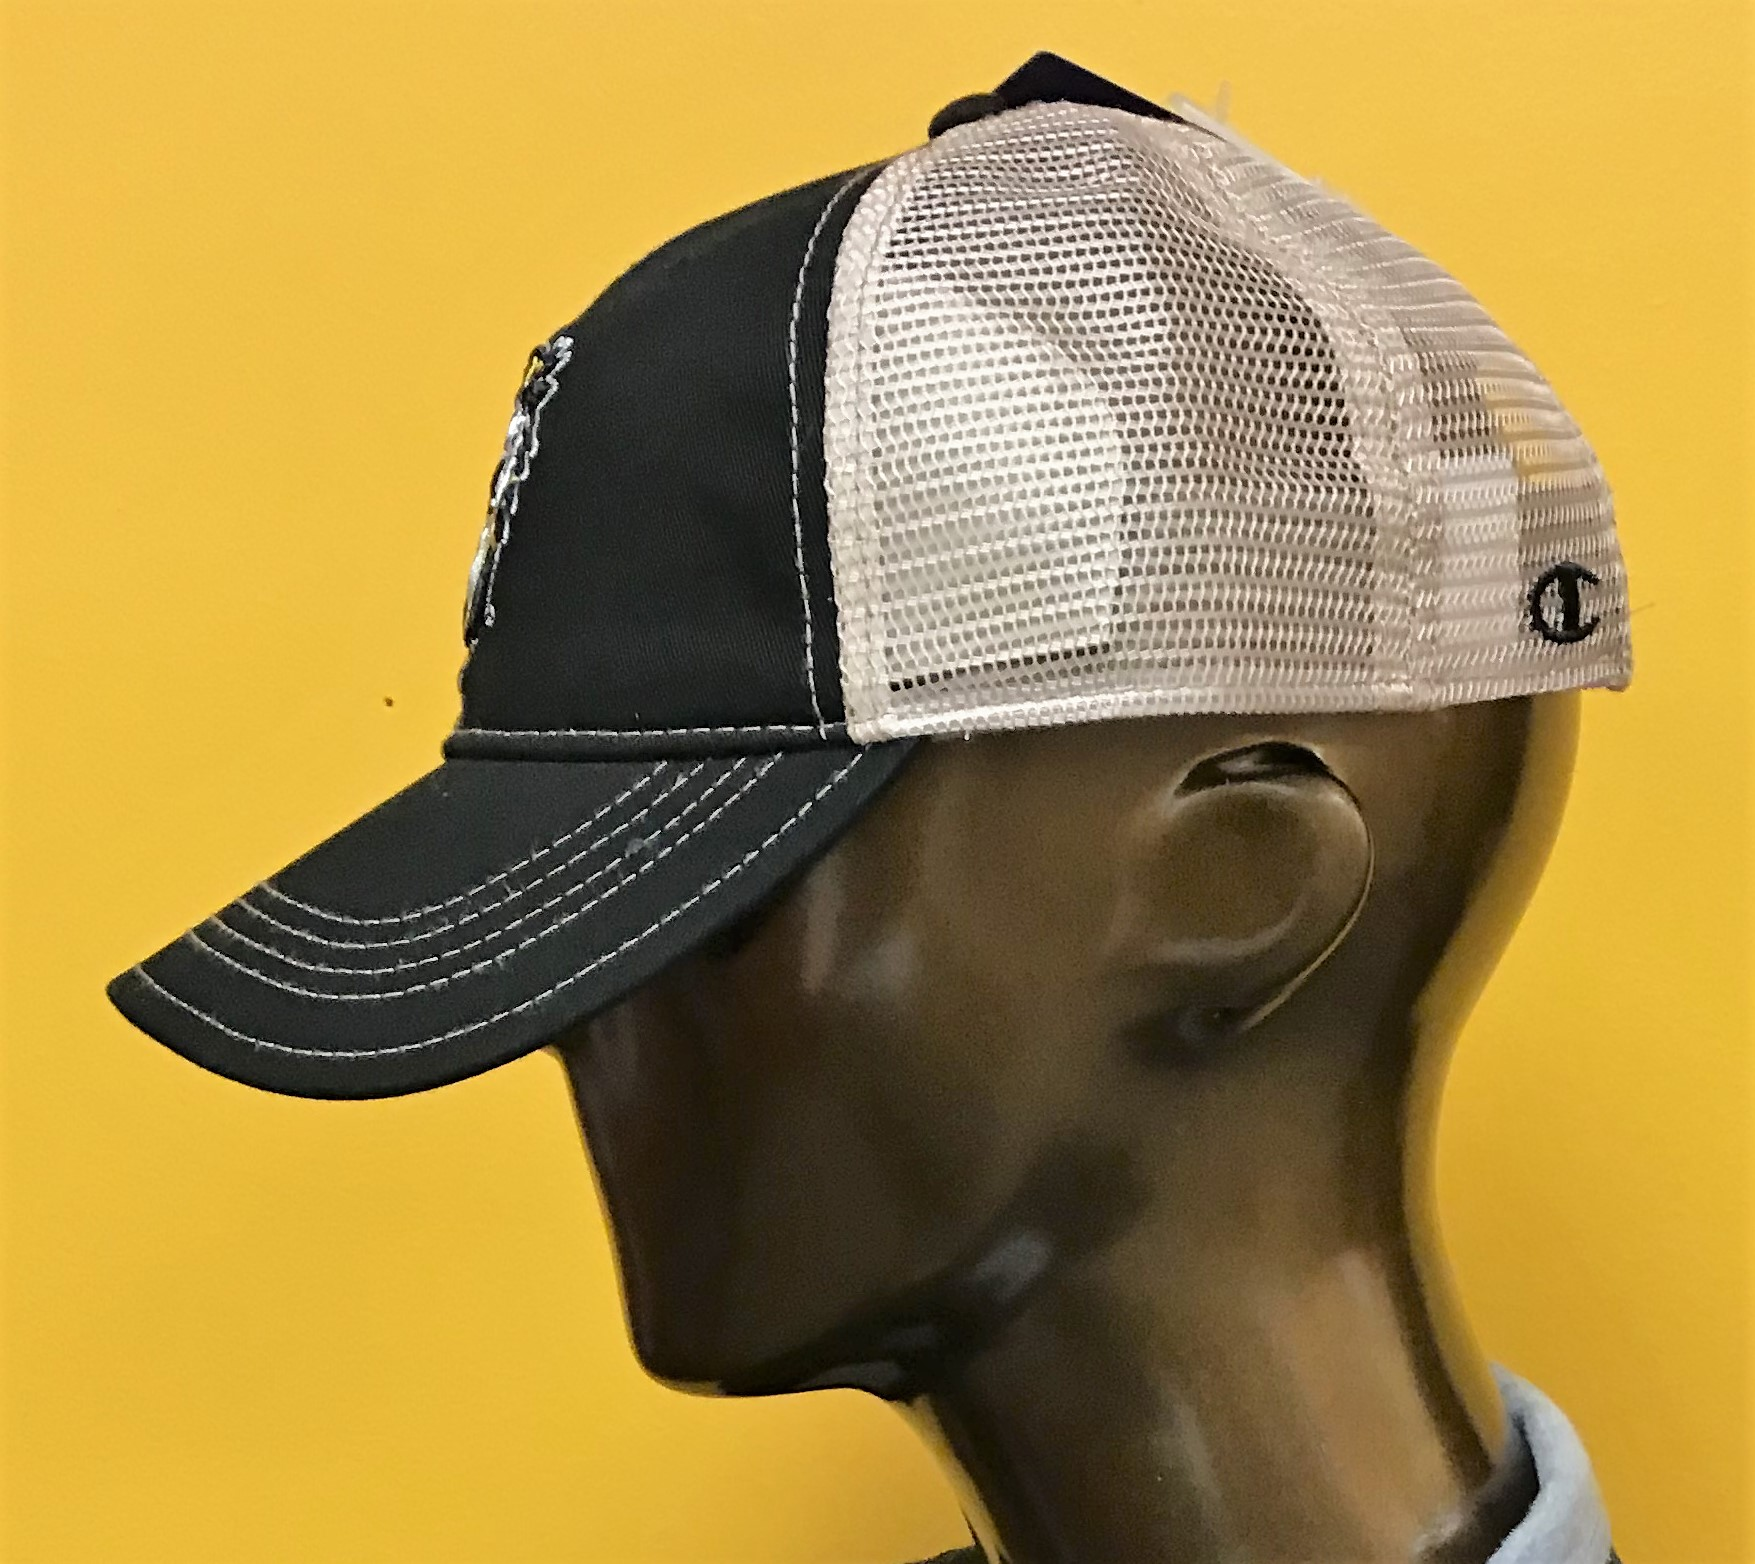 Image for the Cap Trucker Mesh Black Champion product